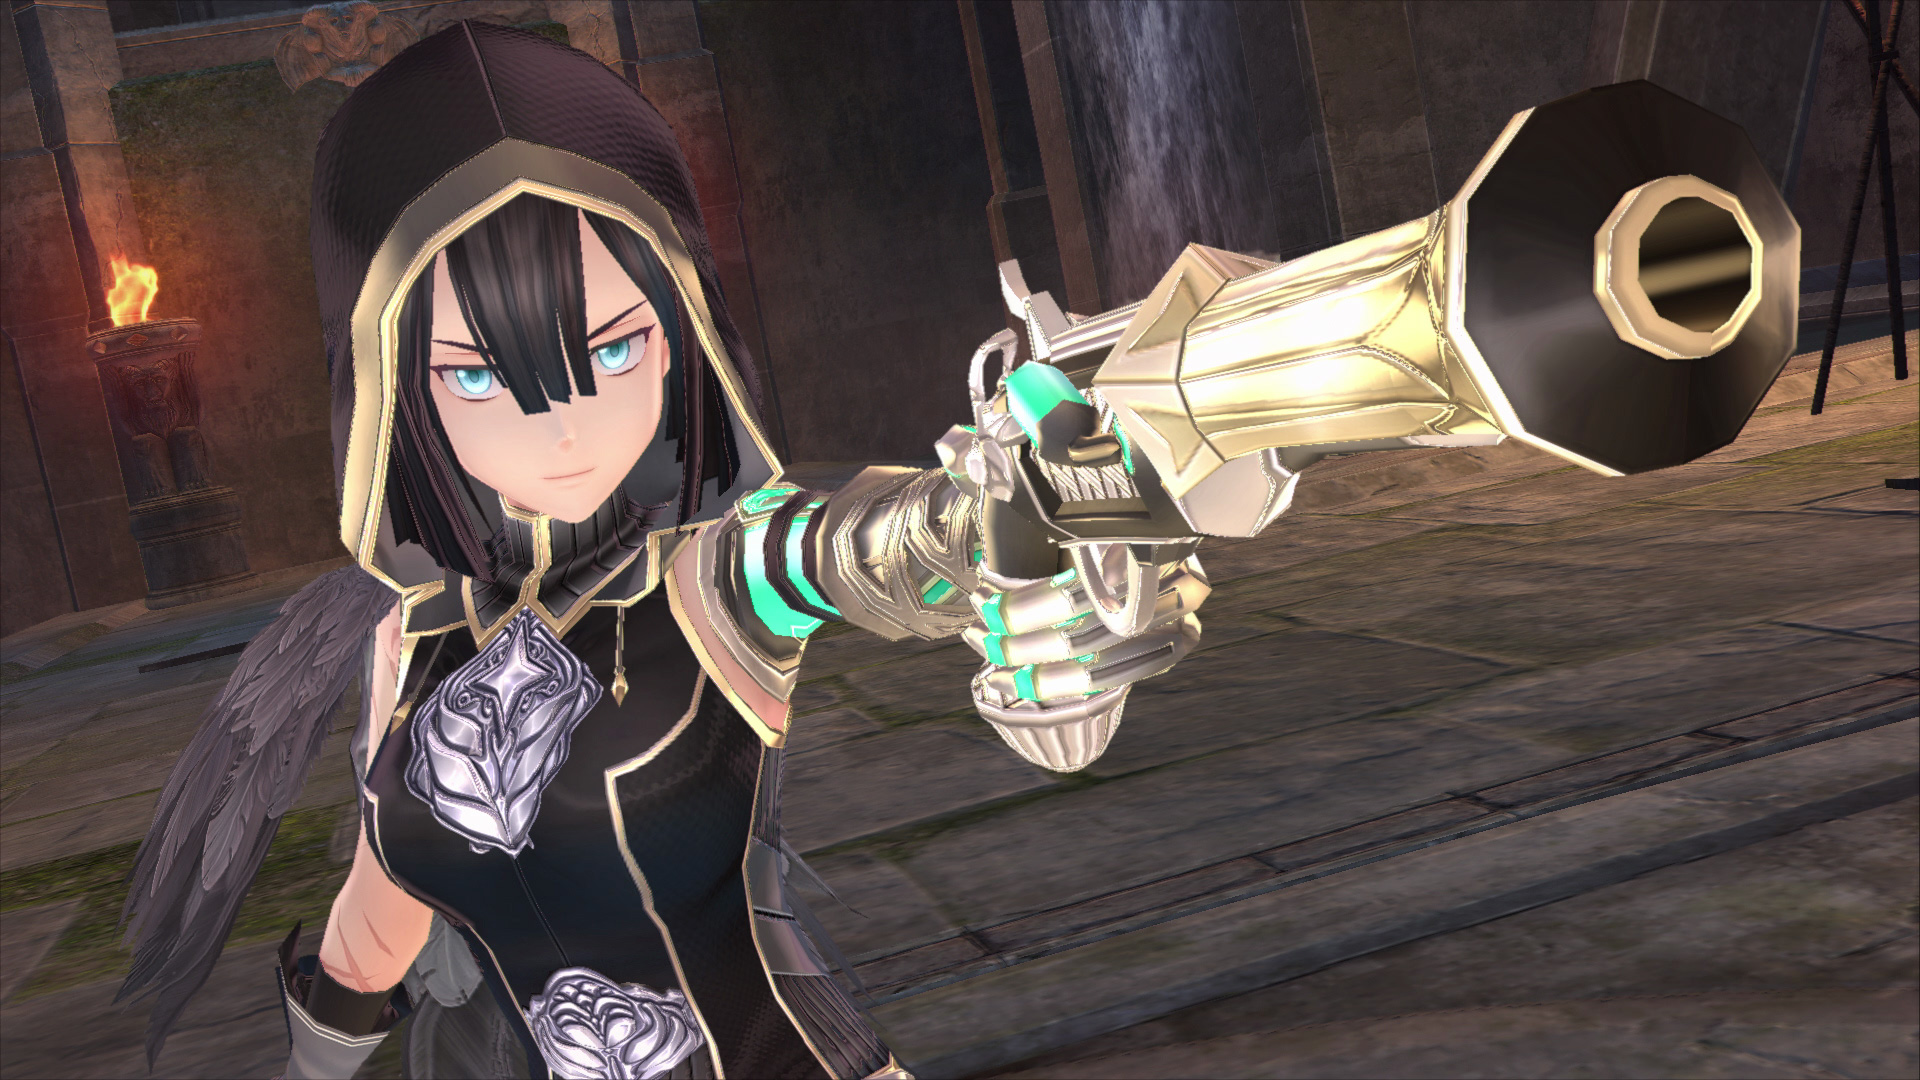 Aprilis, in a gold-trimmed hood, brandishes her Monstrum gun weapon in this Ys IX: Monstrum Nox screenshot.